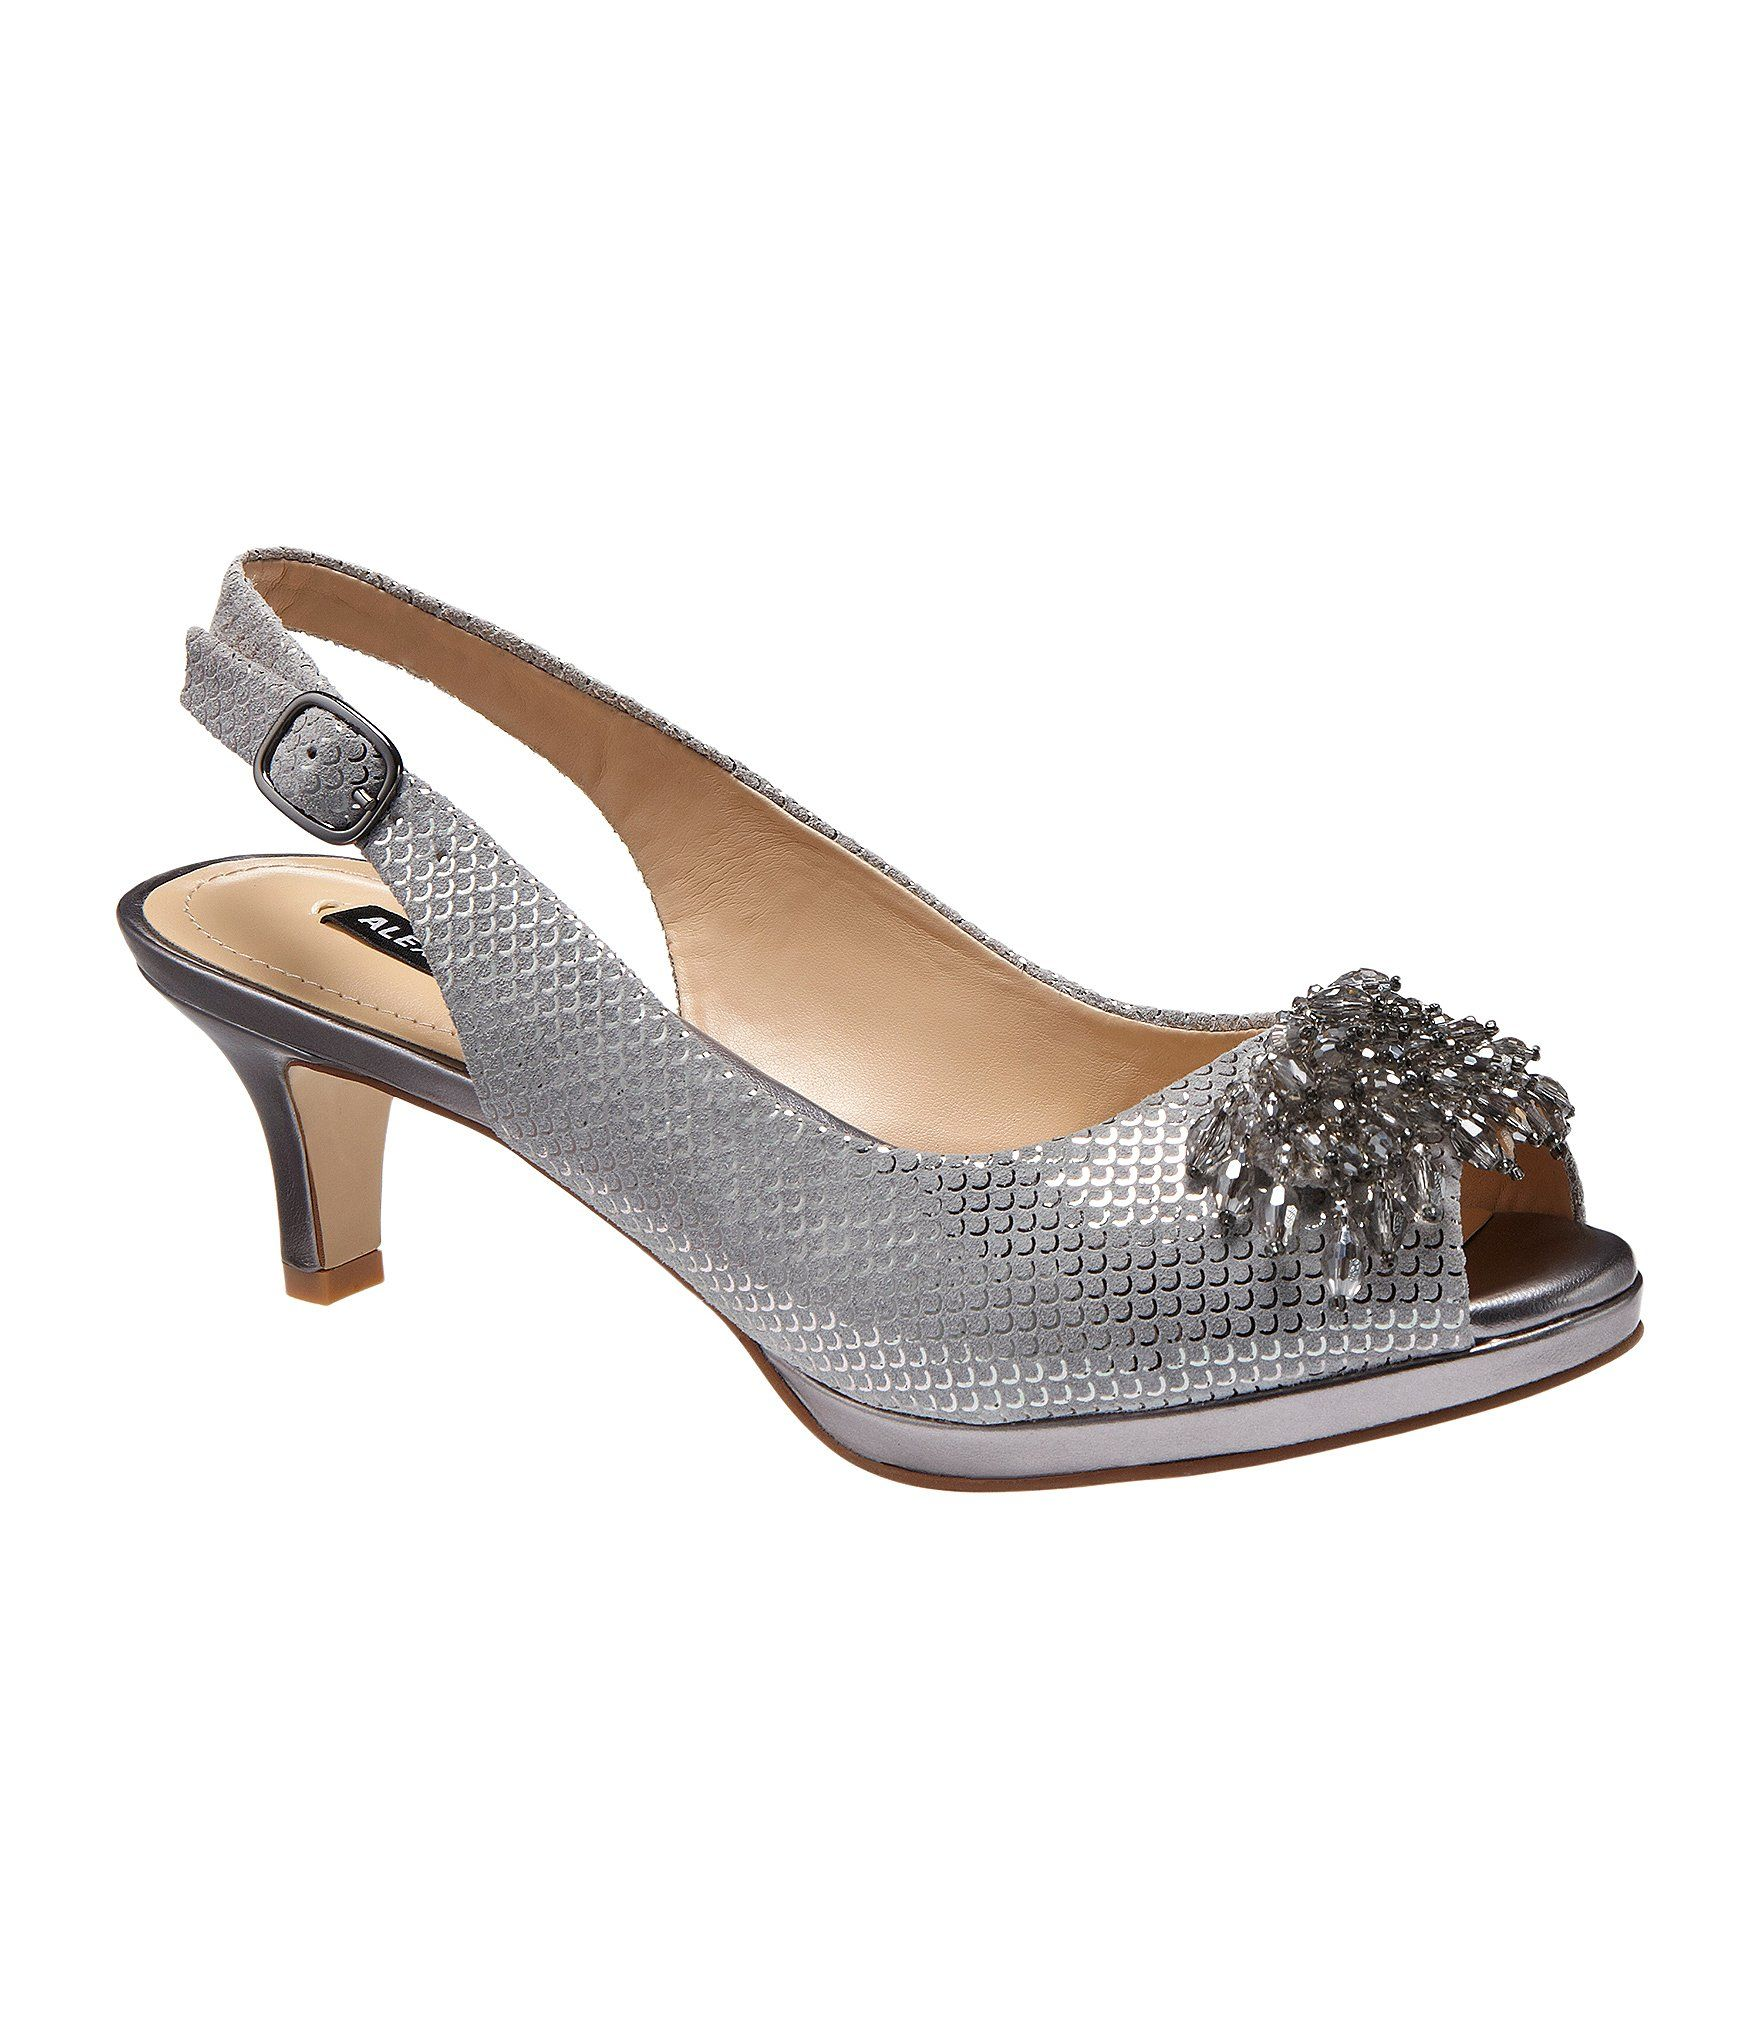 Alex Marie Marla Jeweled Peep Toe Pumps Dillards Mother Of The Bride Shoes Mother Of The Groom Shoes Groom Shoes